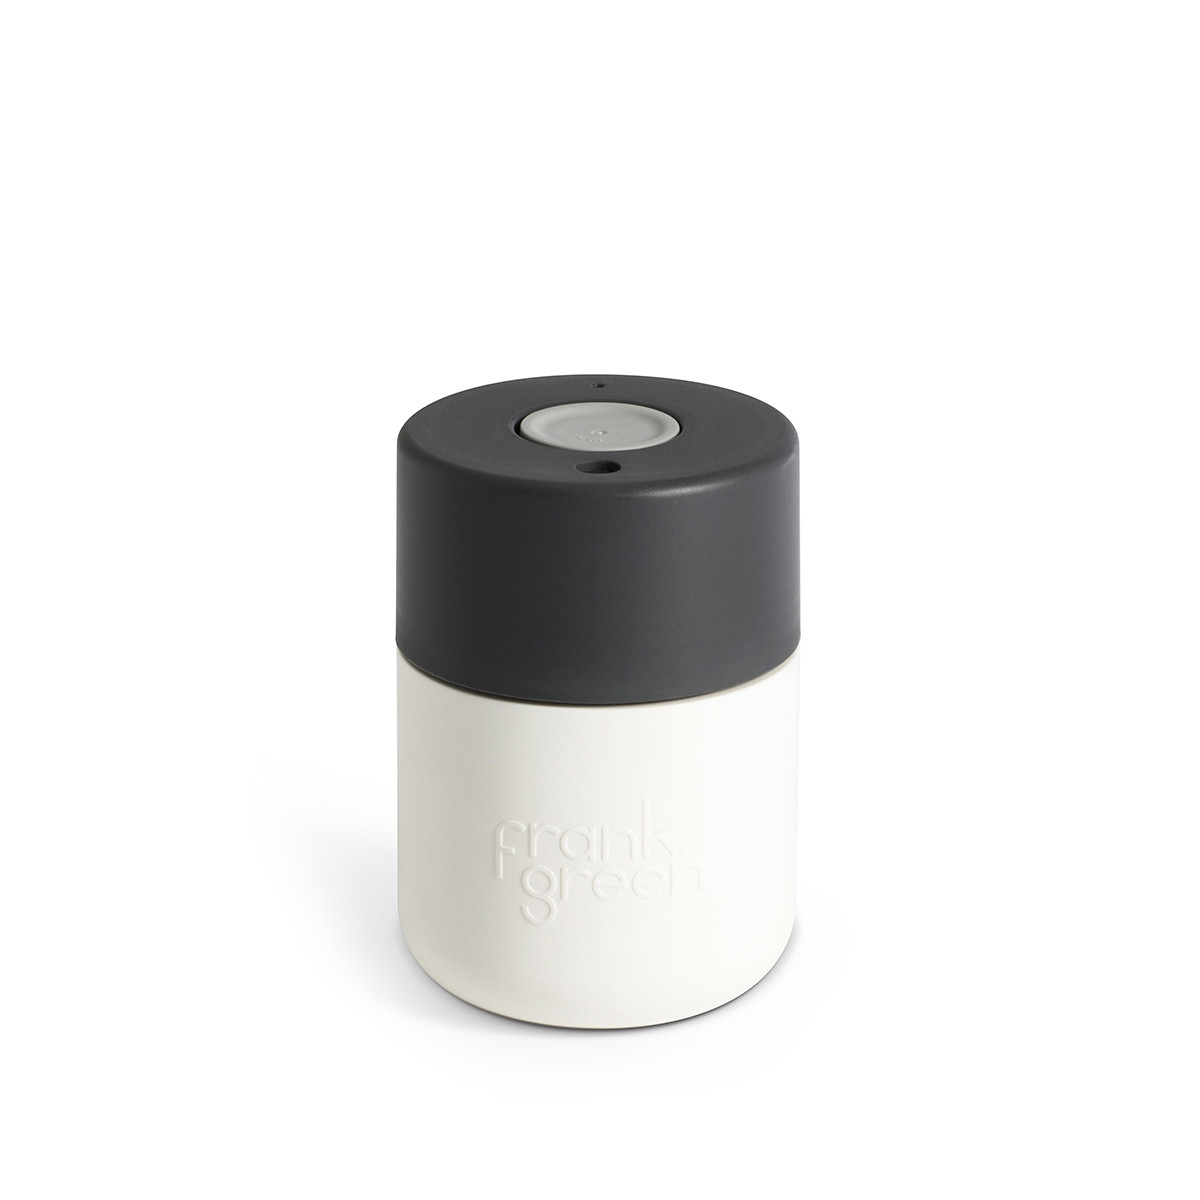 Frank green smart cup - white/cool grey